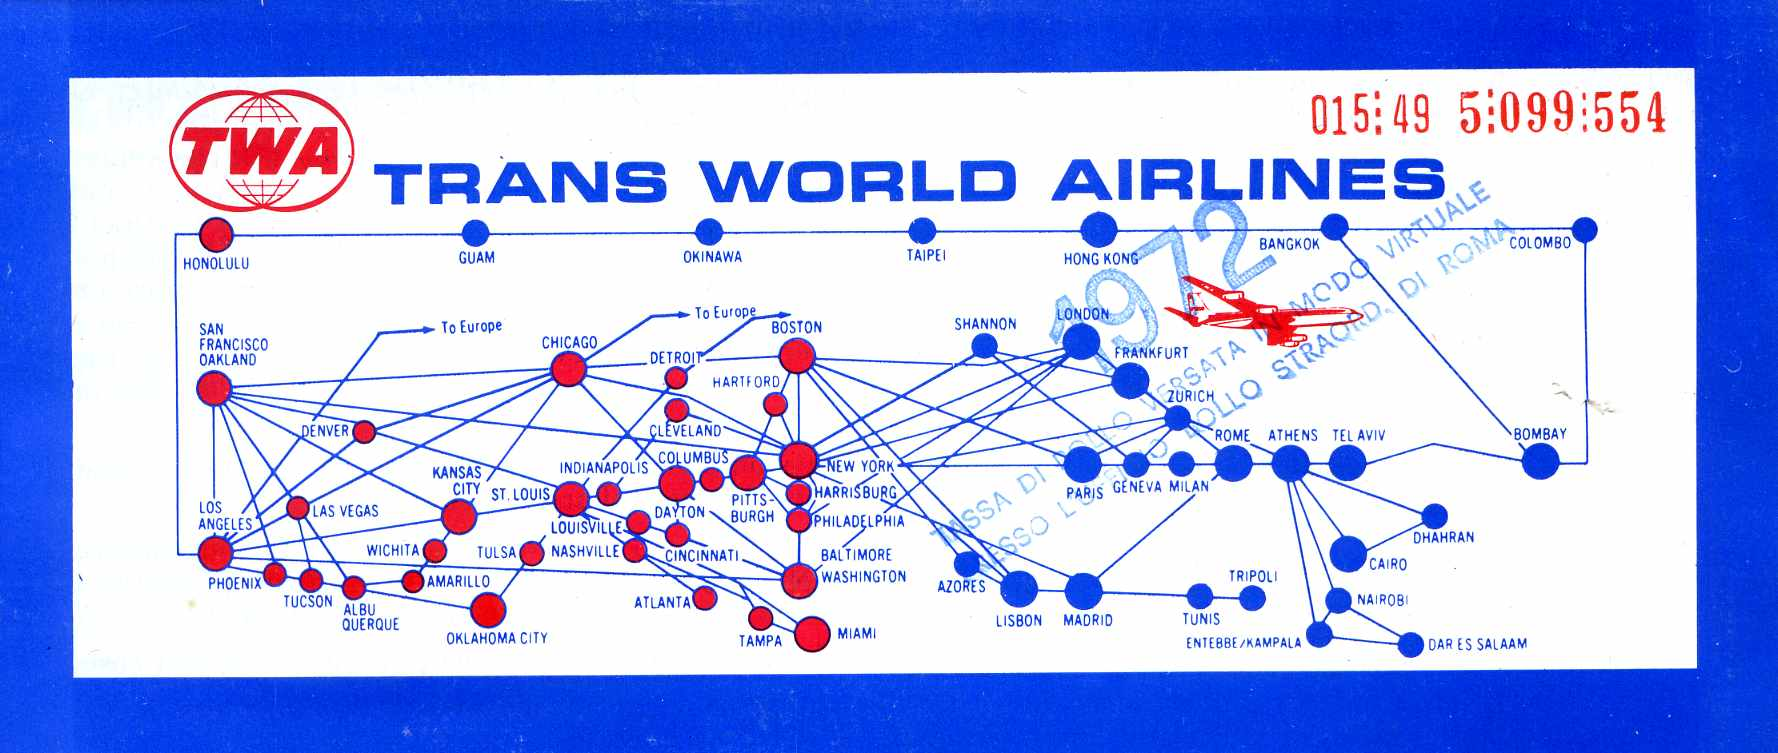 World Airline Route Map http://commons.wikimedia.org/wiki/File:Trans_World_Airlines_route_map.jpg